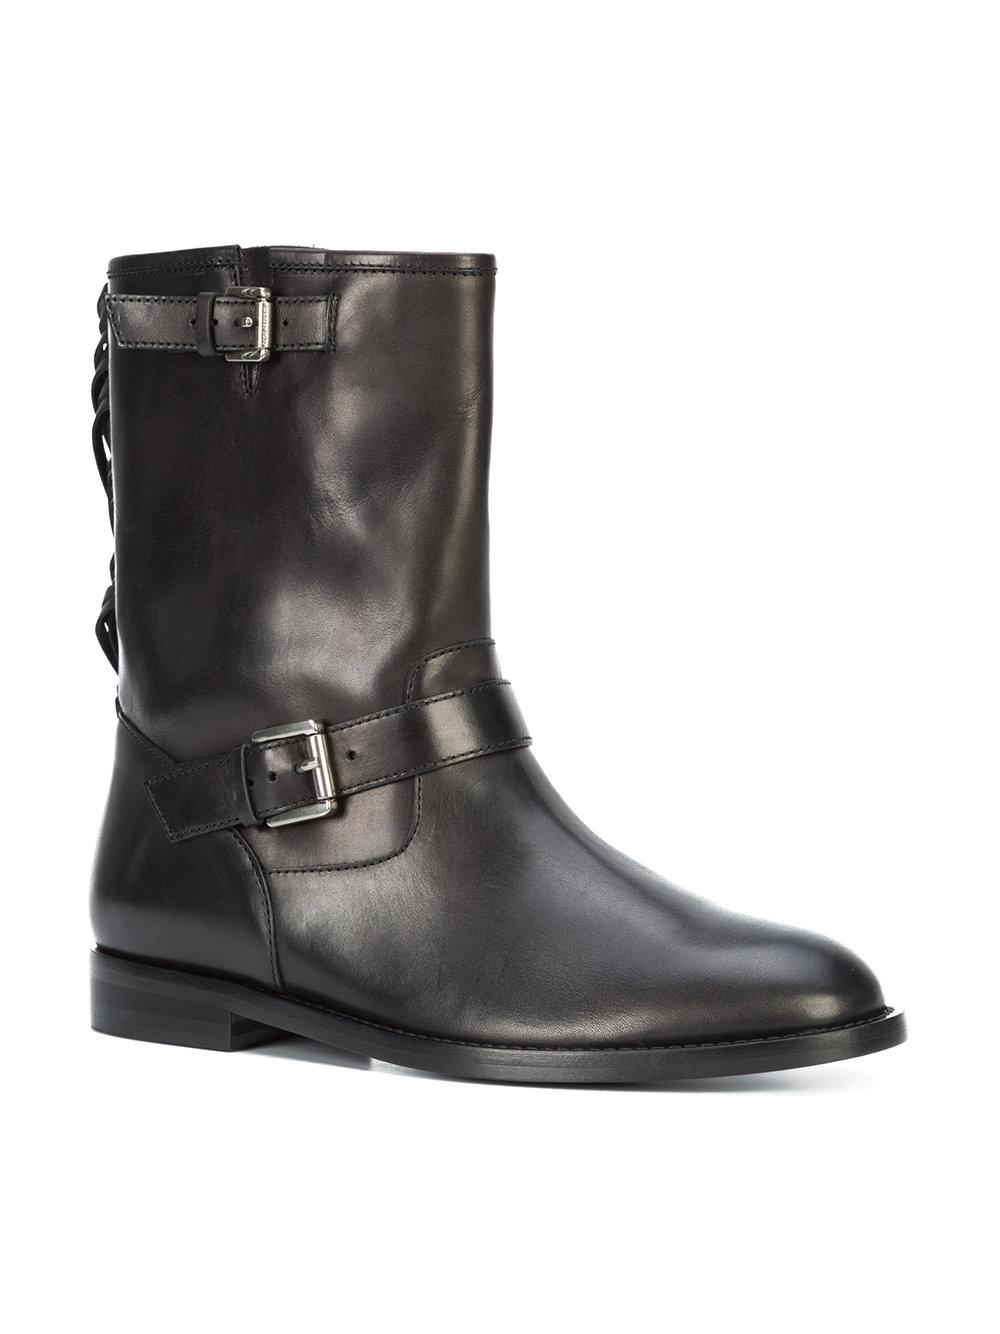 Michael Kors Leather Tassel Ankle Boots in Black